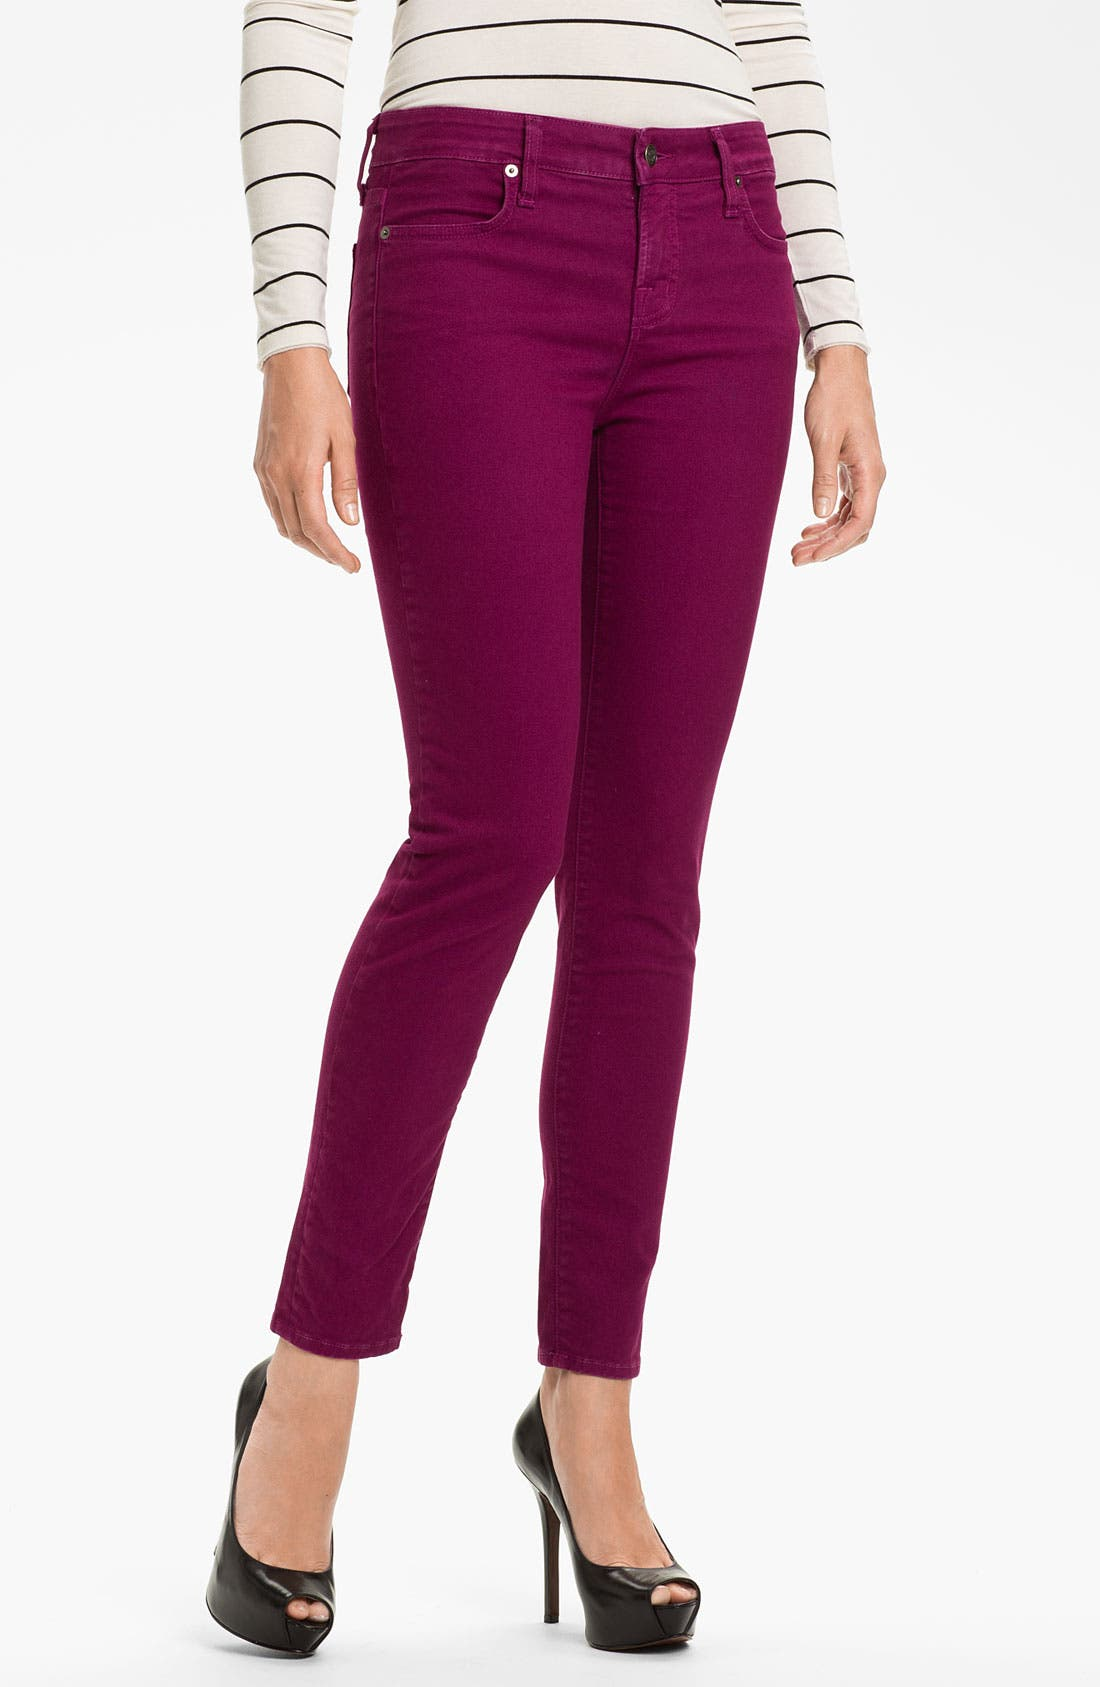 Alternate Image 1 Selected - Blue Essence Skinny Twill Ankle Jeans (Nordstrom Exclusive)